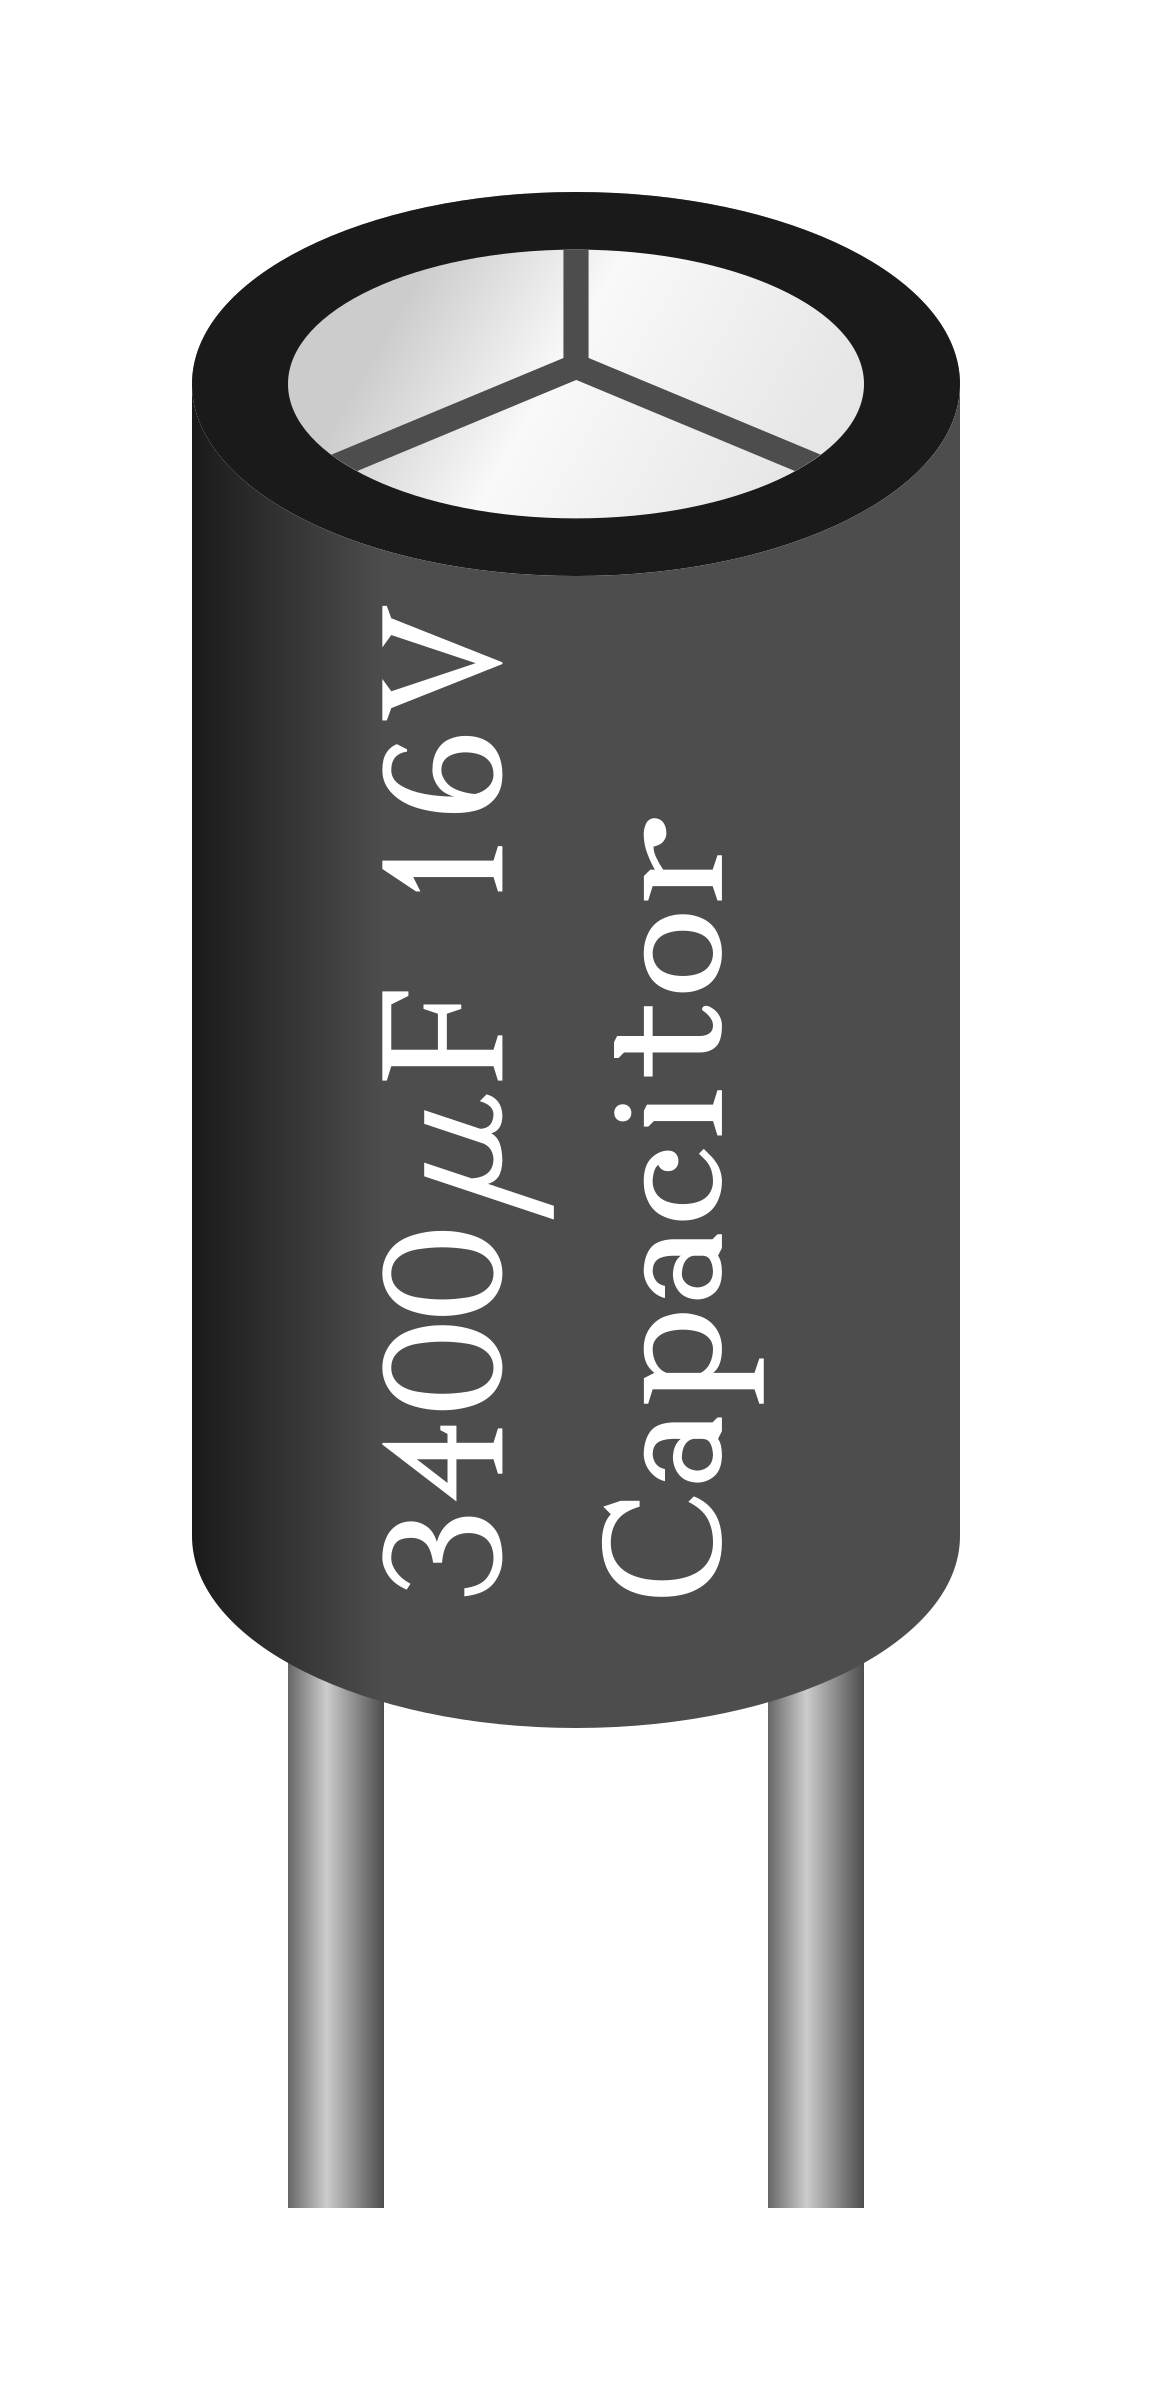 Aluminum electrolytic capacitor by jhnri4